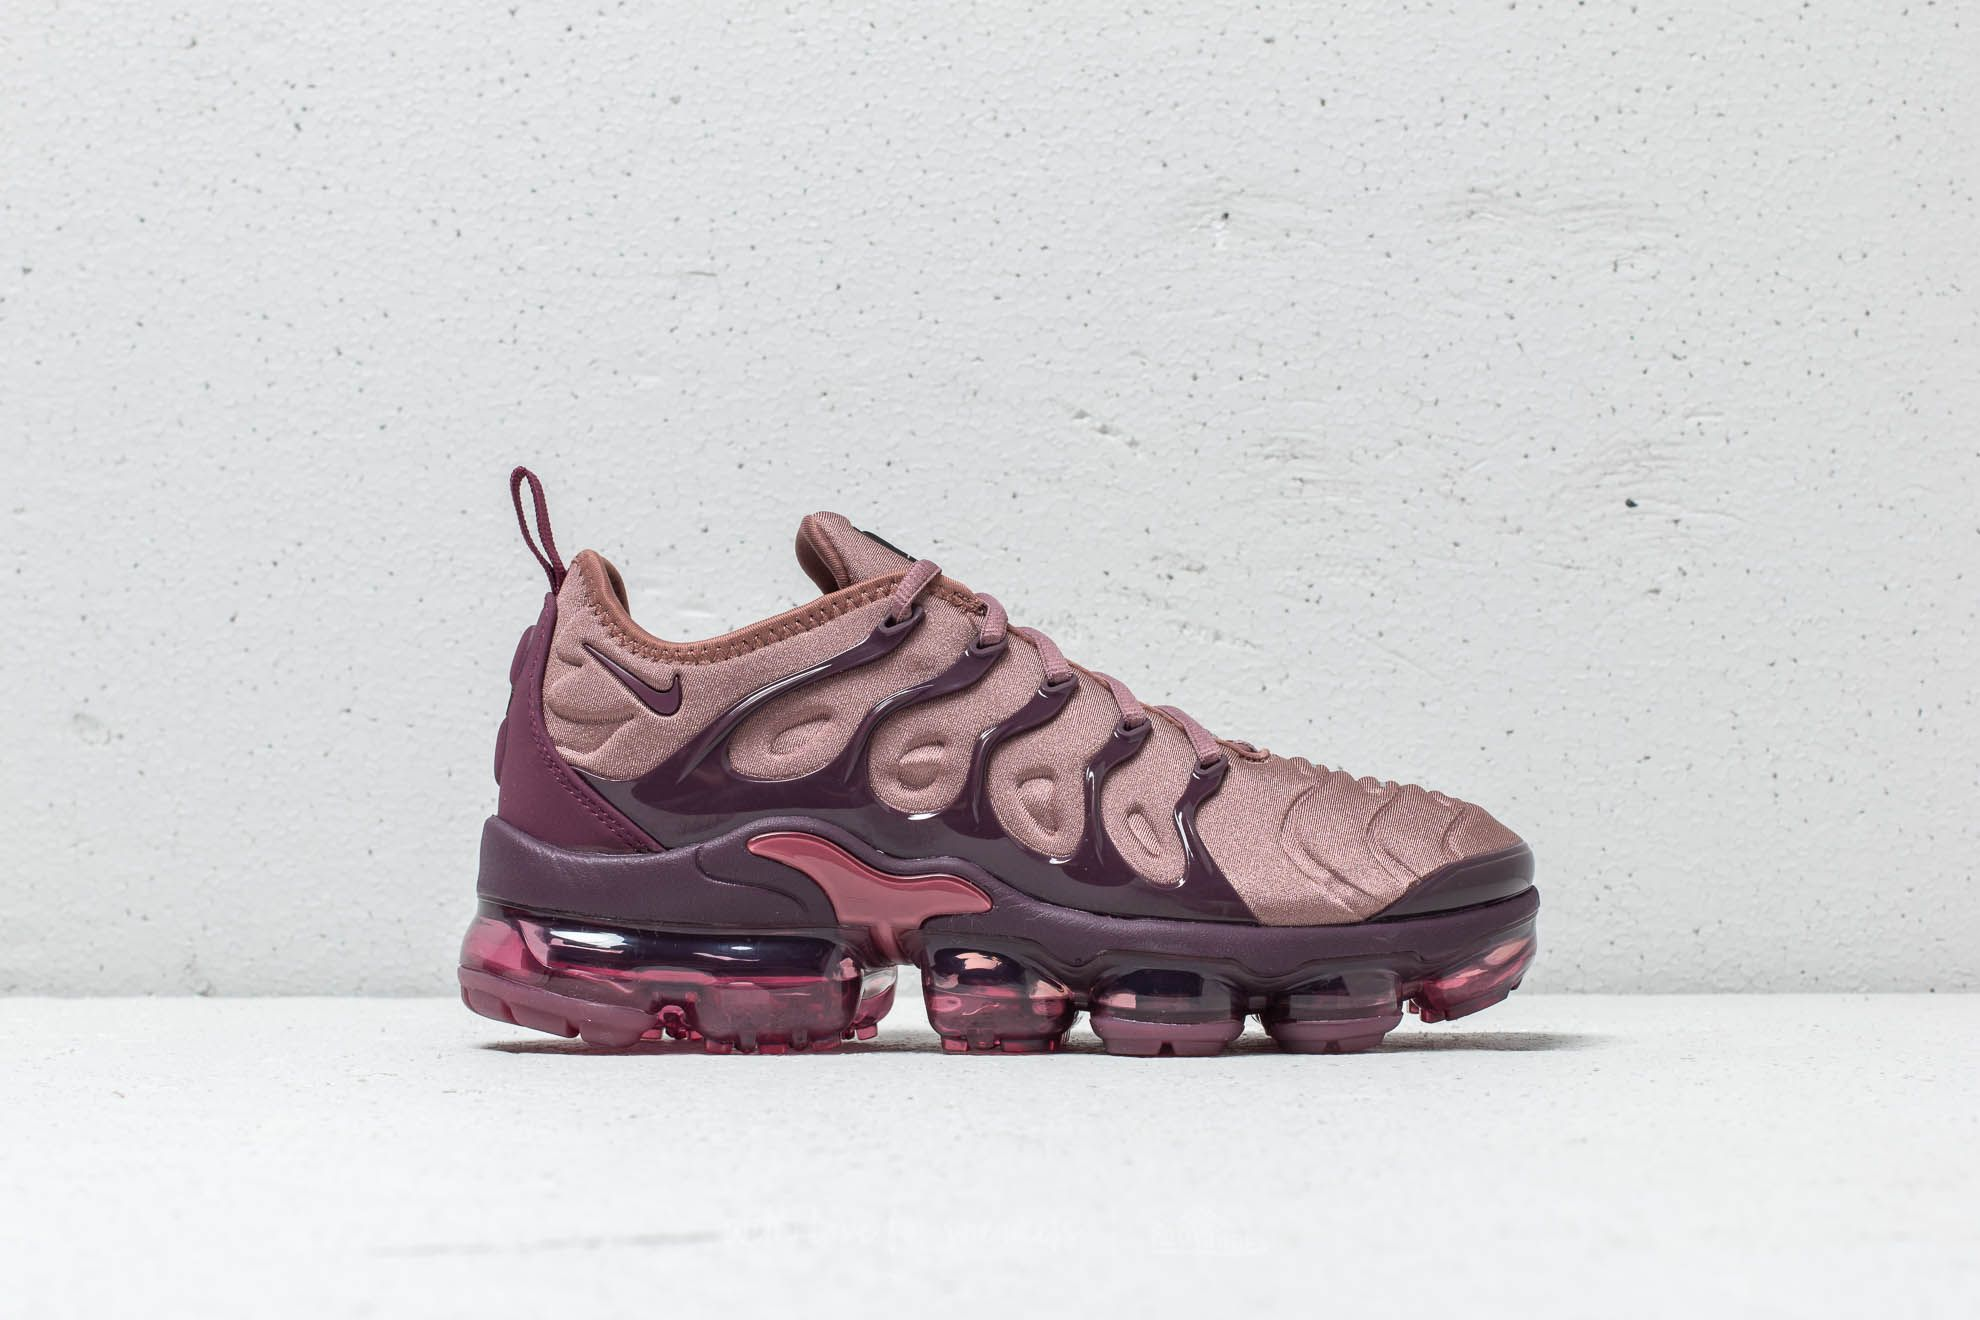 big sale 12989 9ed36 Nike Wmns Air Vapormax Plus Smokey Mauve/ Bordeaux | Footshop